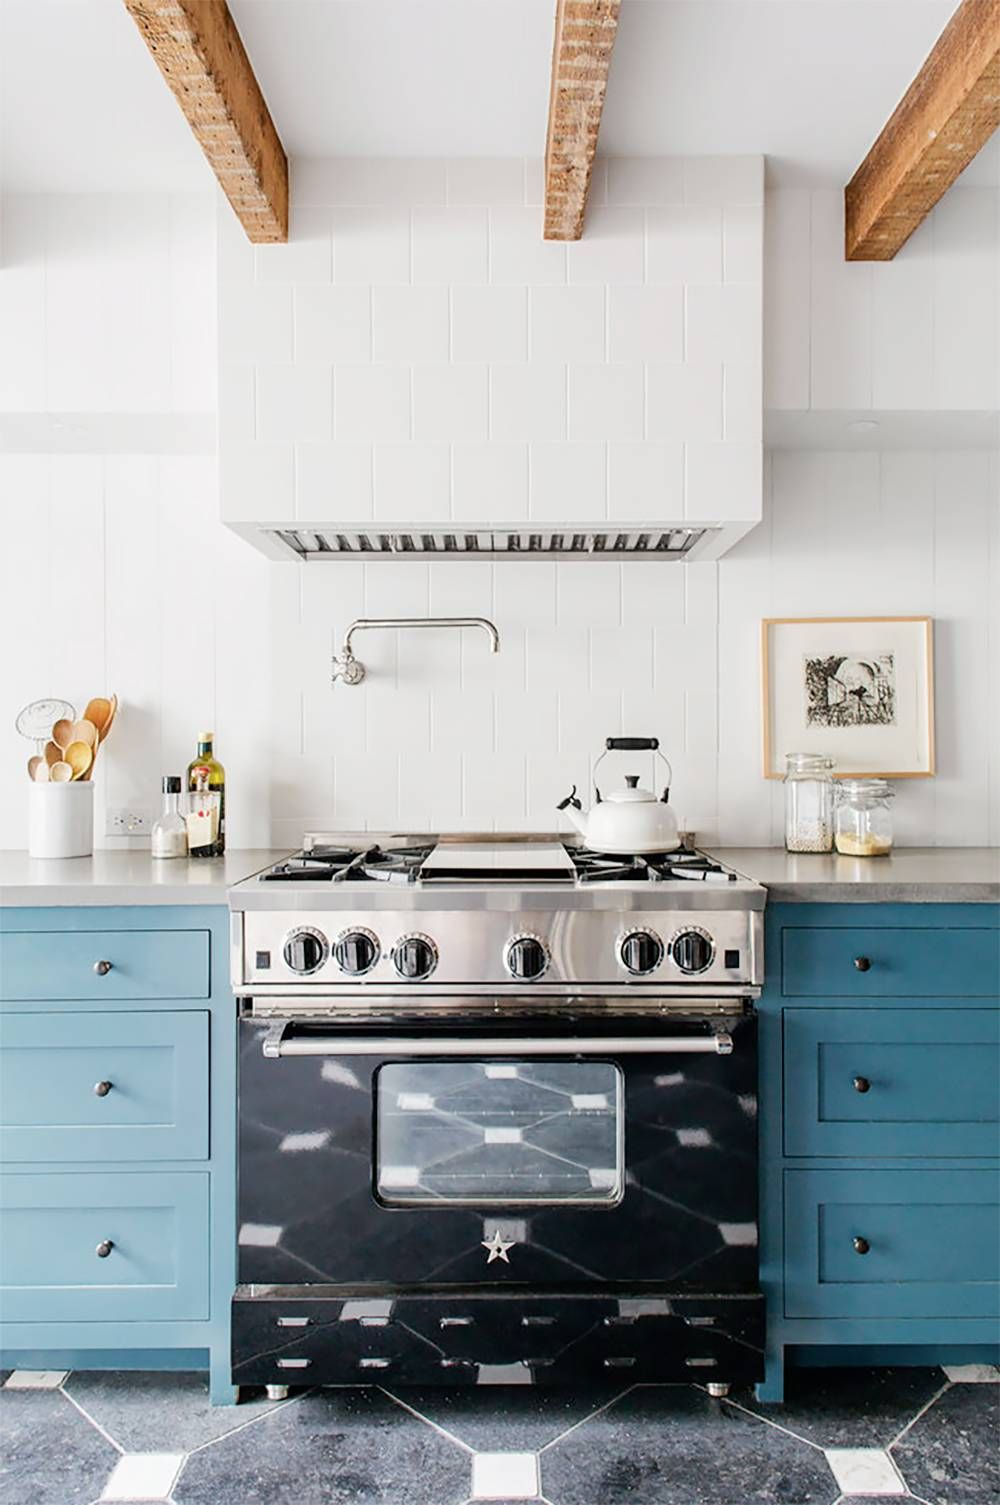 Blueprint Top 10 Interiors In Behr S Color Of The Year 2019 Kitchen Design Home Kitchens Kitchen Interior